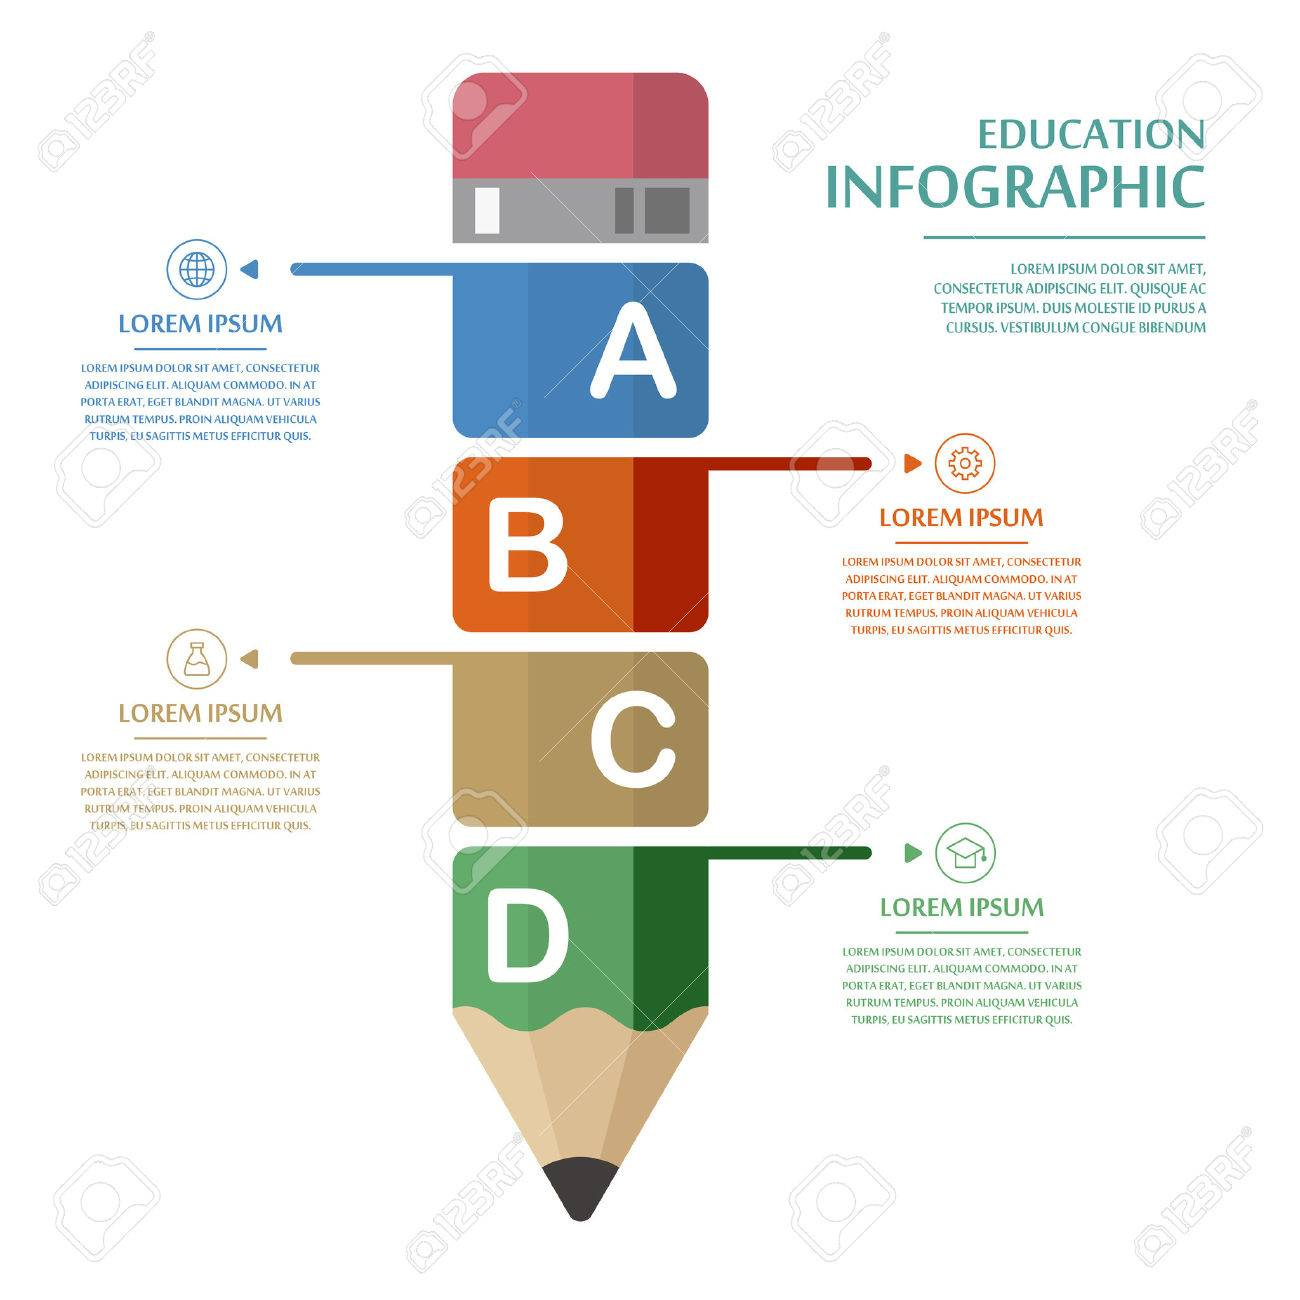 education infographic template design with pencil elements royalty